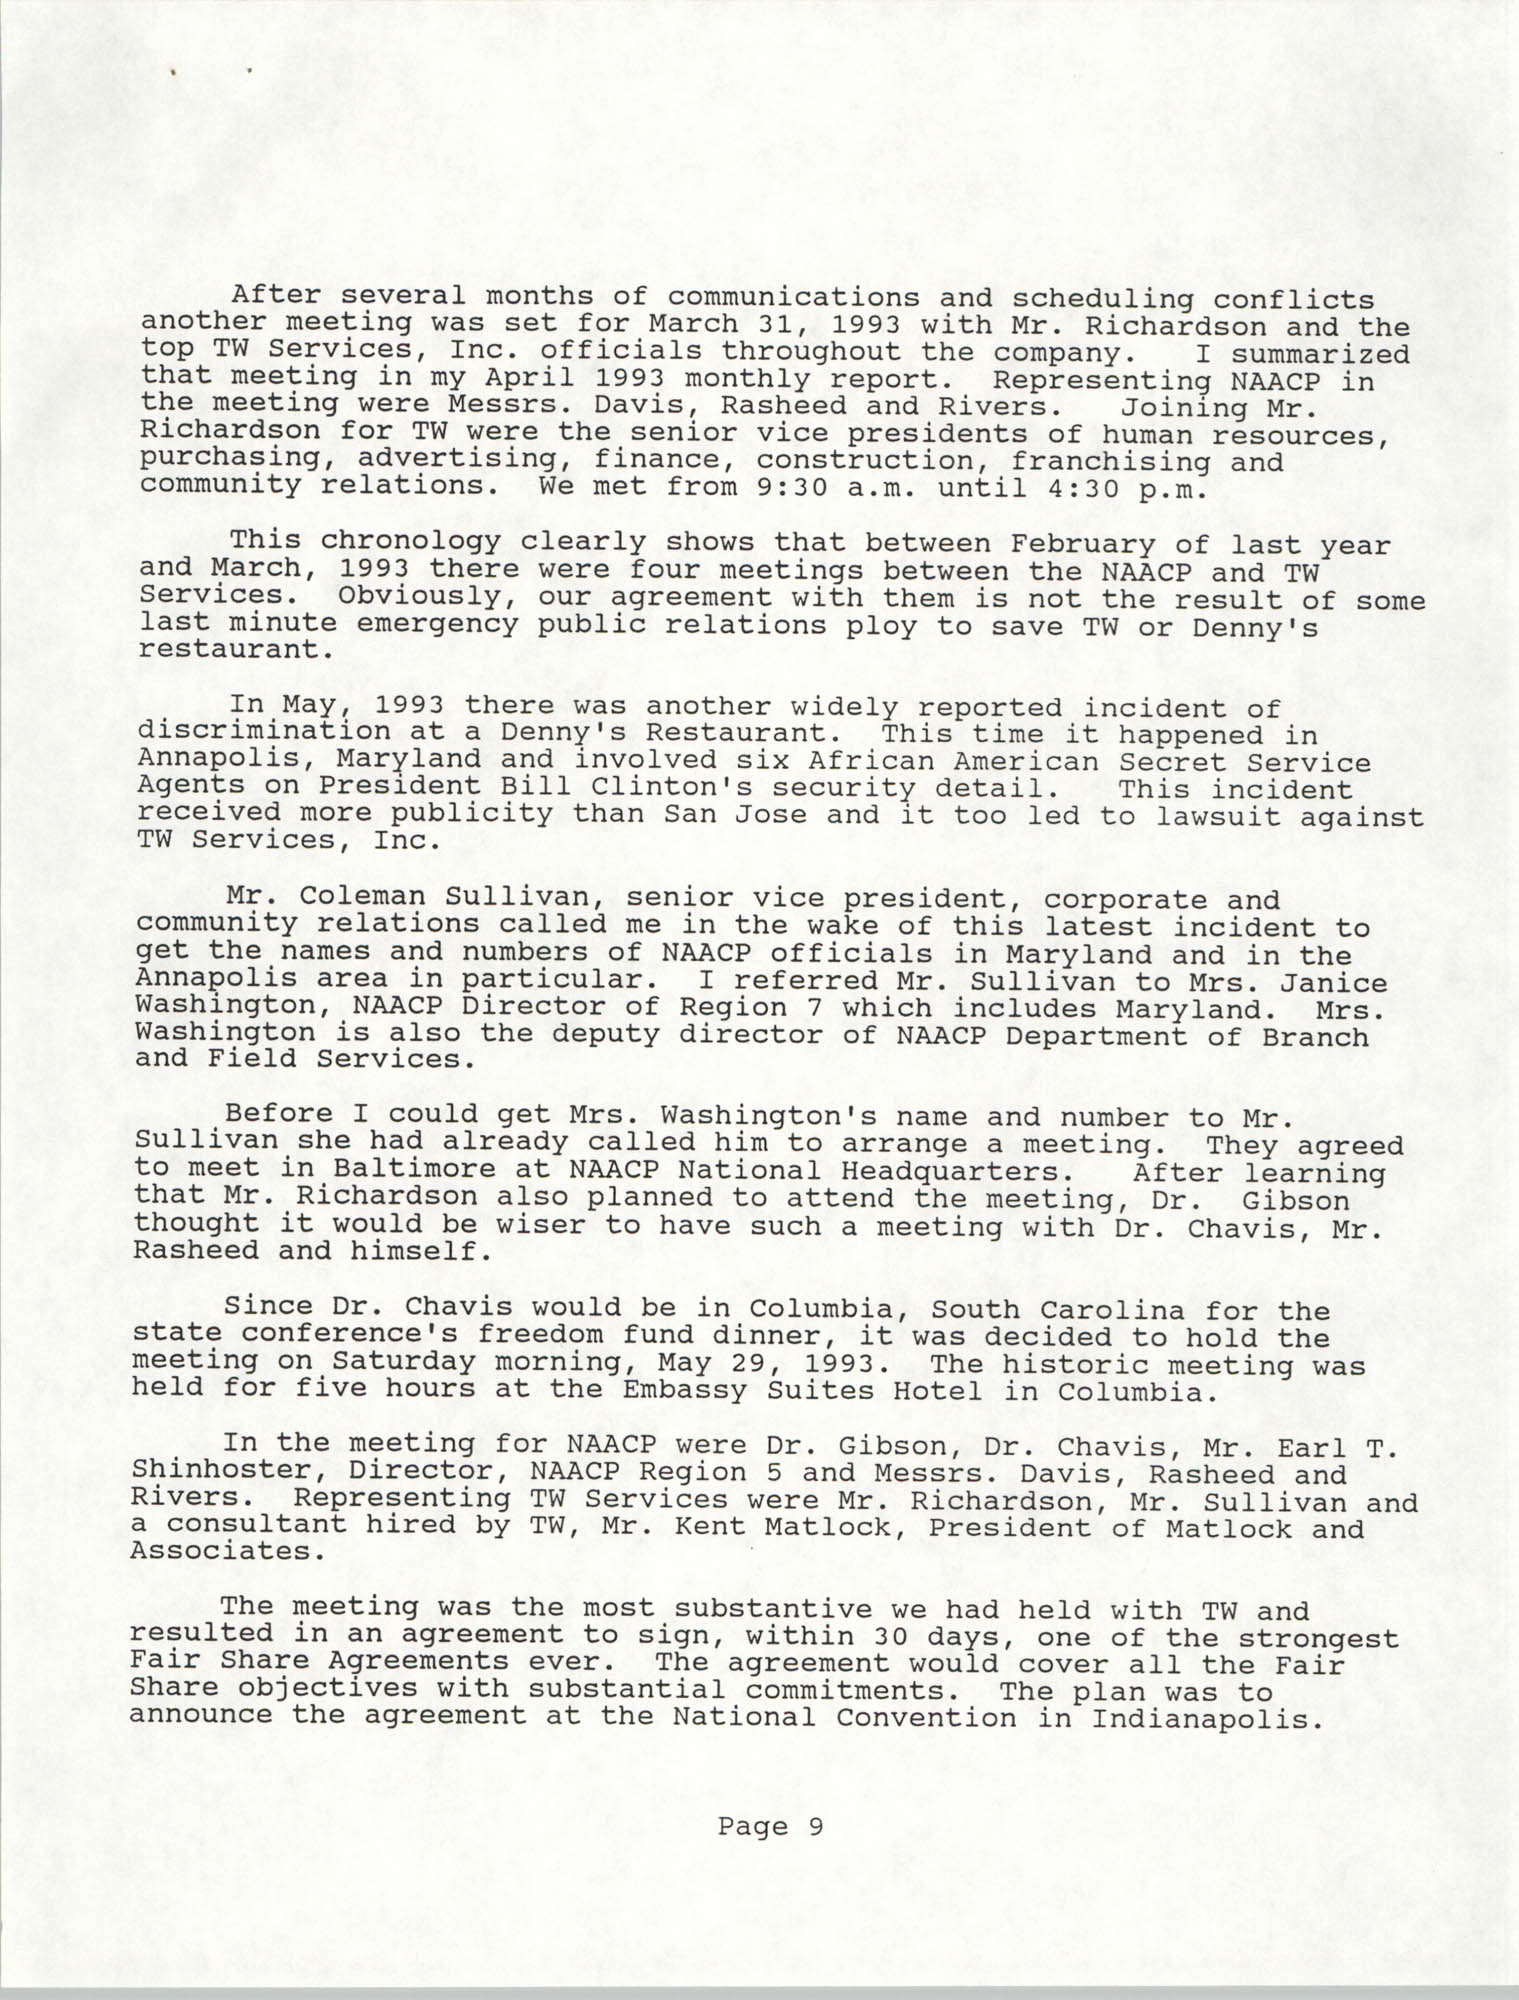 South Carolina Conference of Branches of the NAACP, Annual Report, October 9, 1993, Page 9